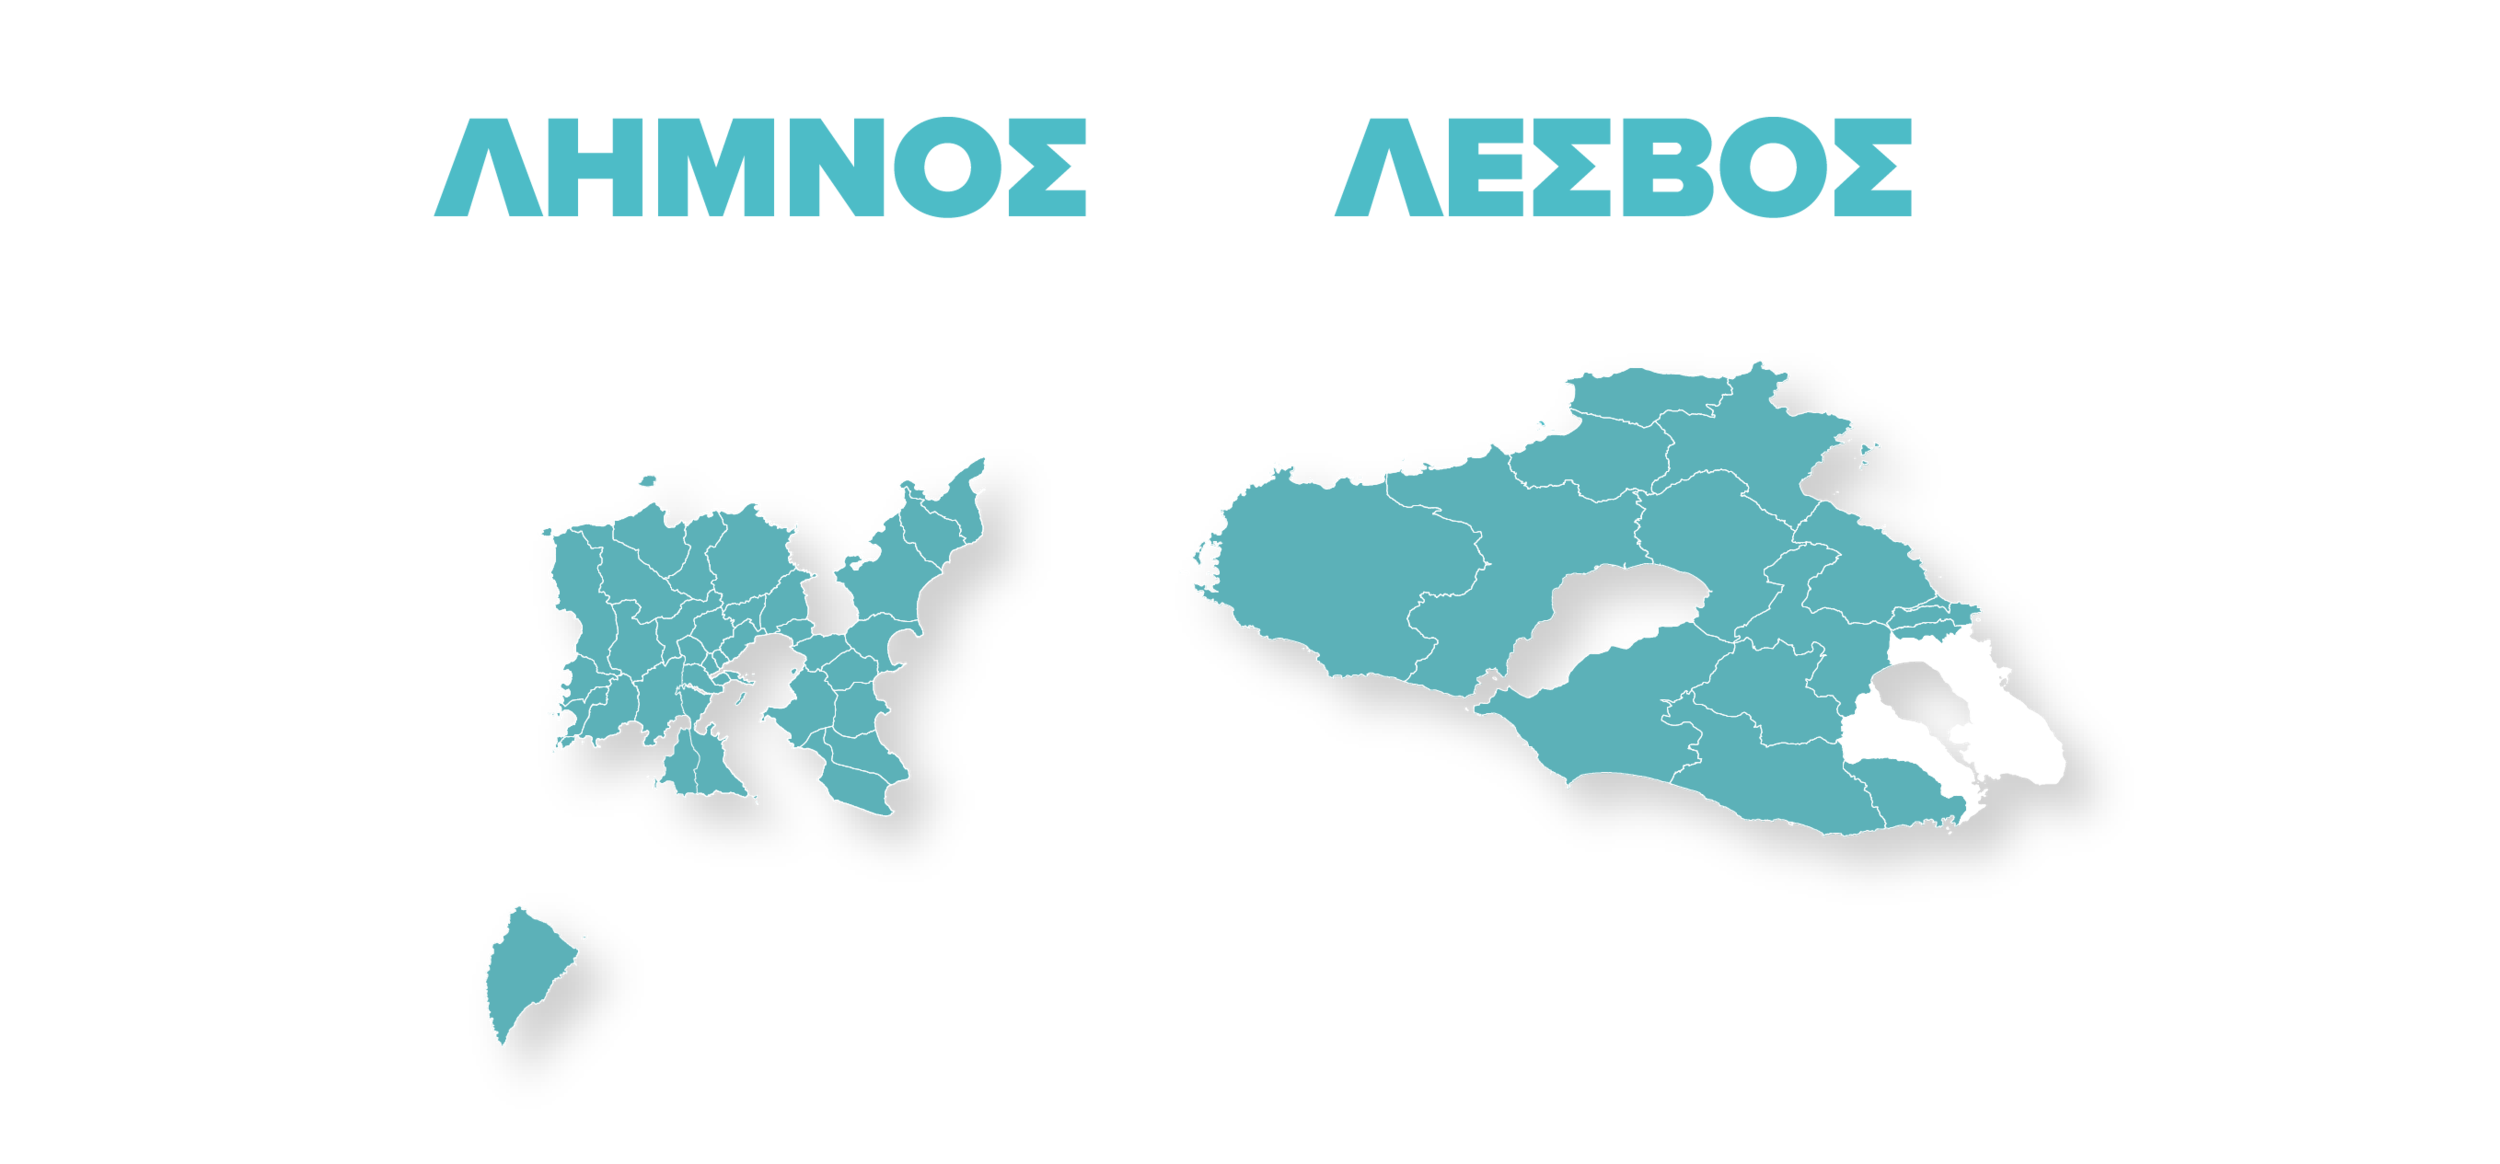 limnos lesbos header-06-06.png